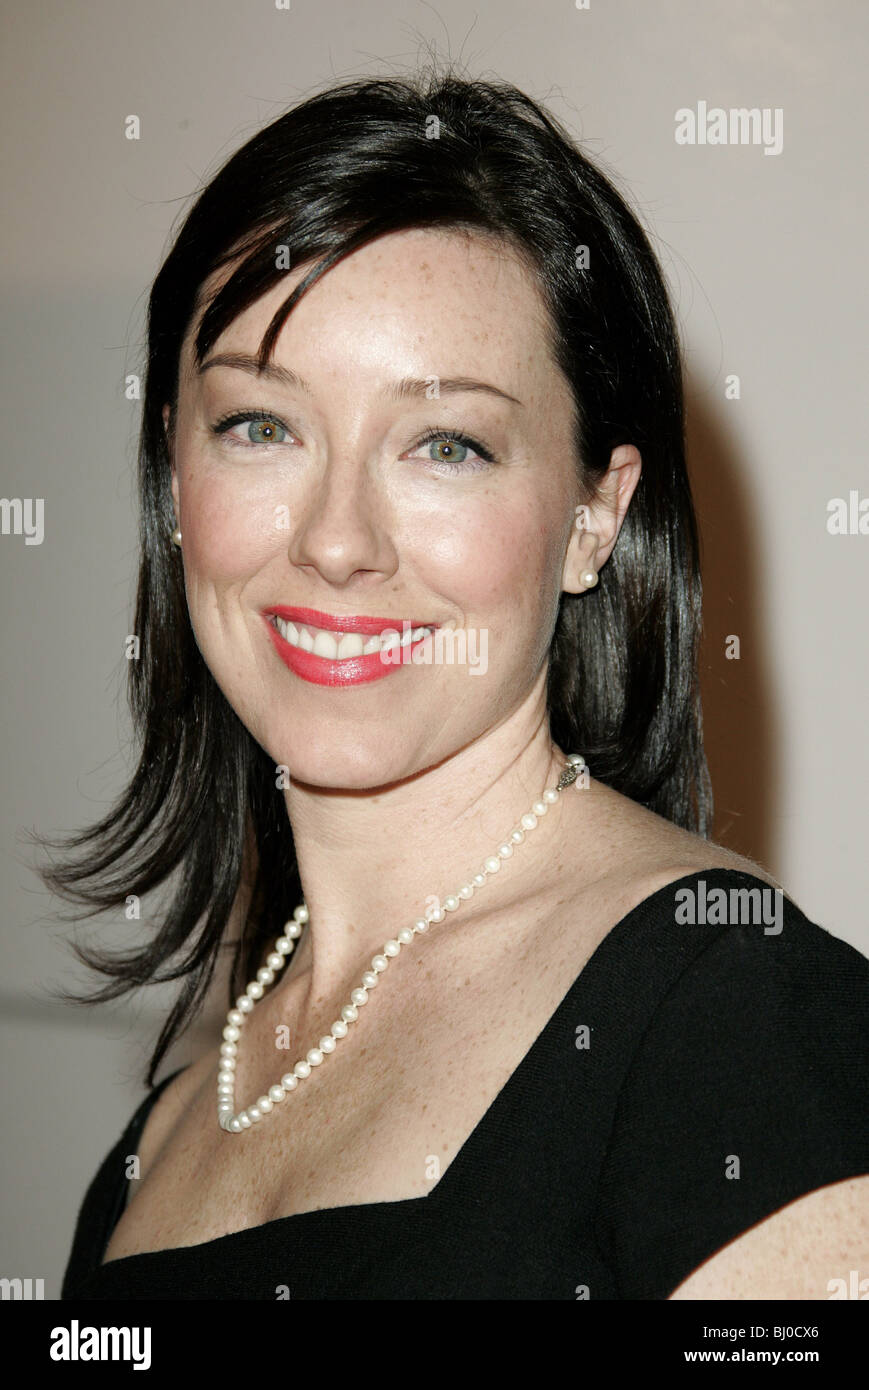 MOLLY PARKER ACTRESS LOS ANGELES COUNTY MUSEUM OF ART LOS ...